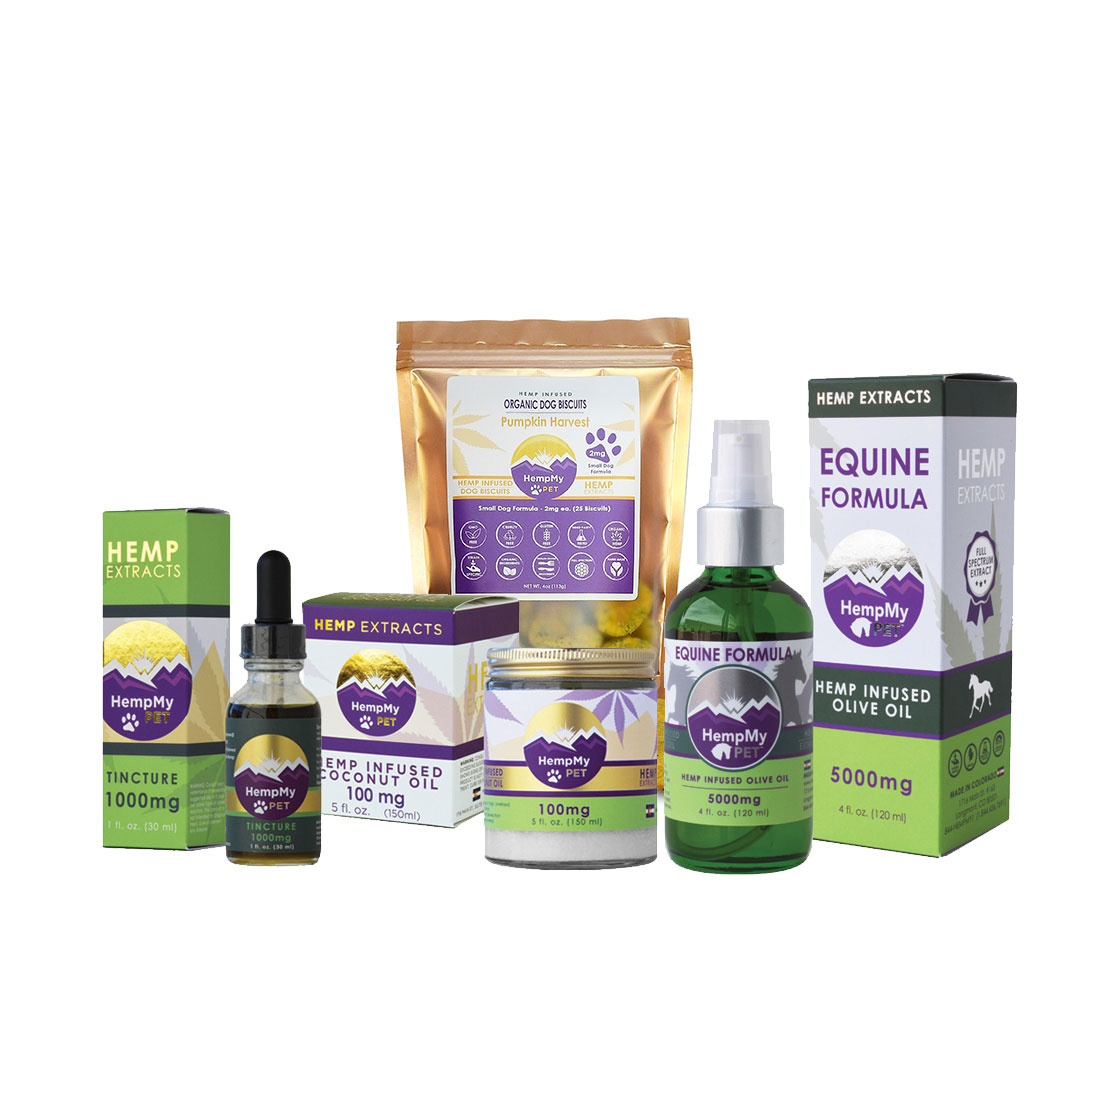 HempMy Pet CBG Oils for Pets